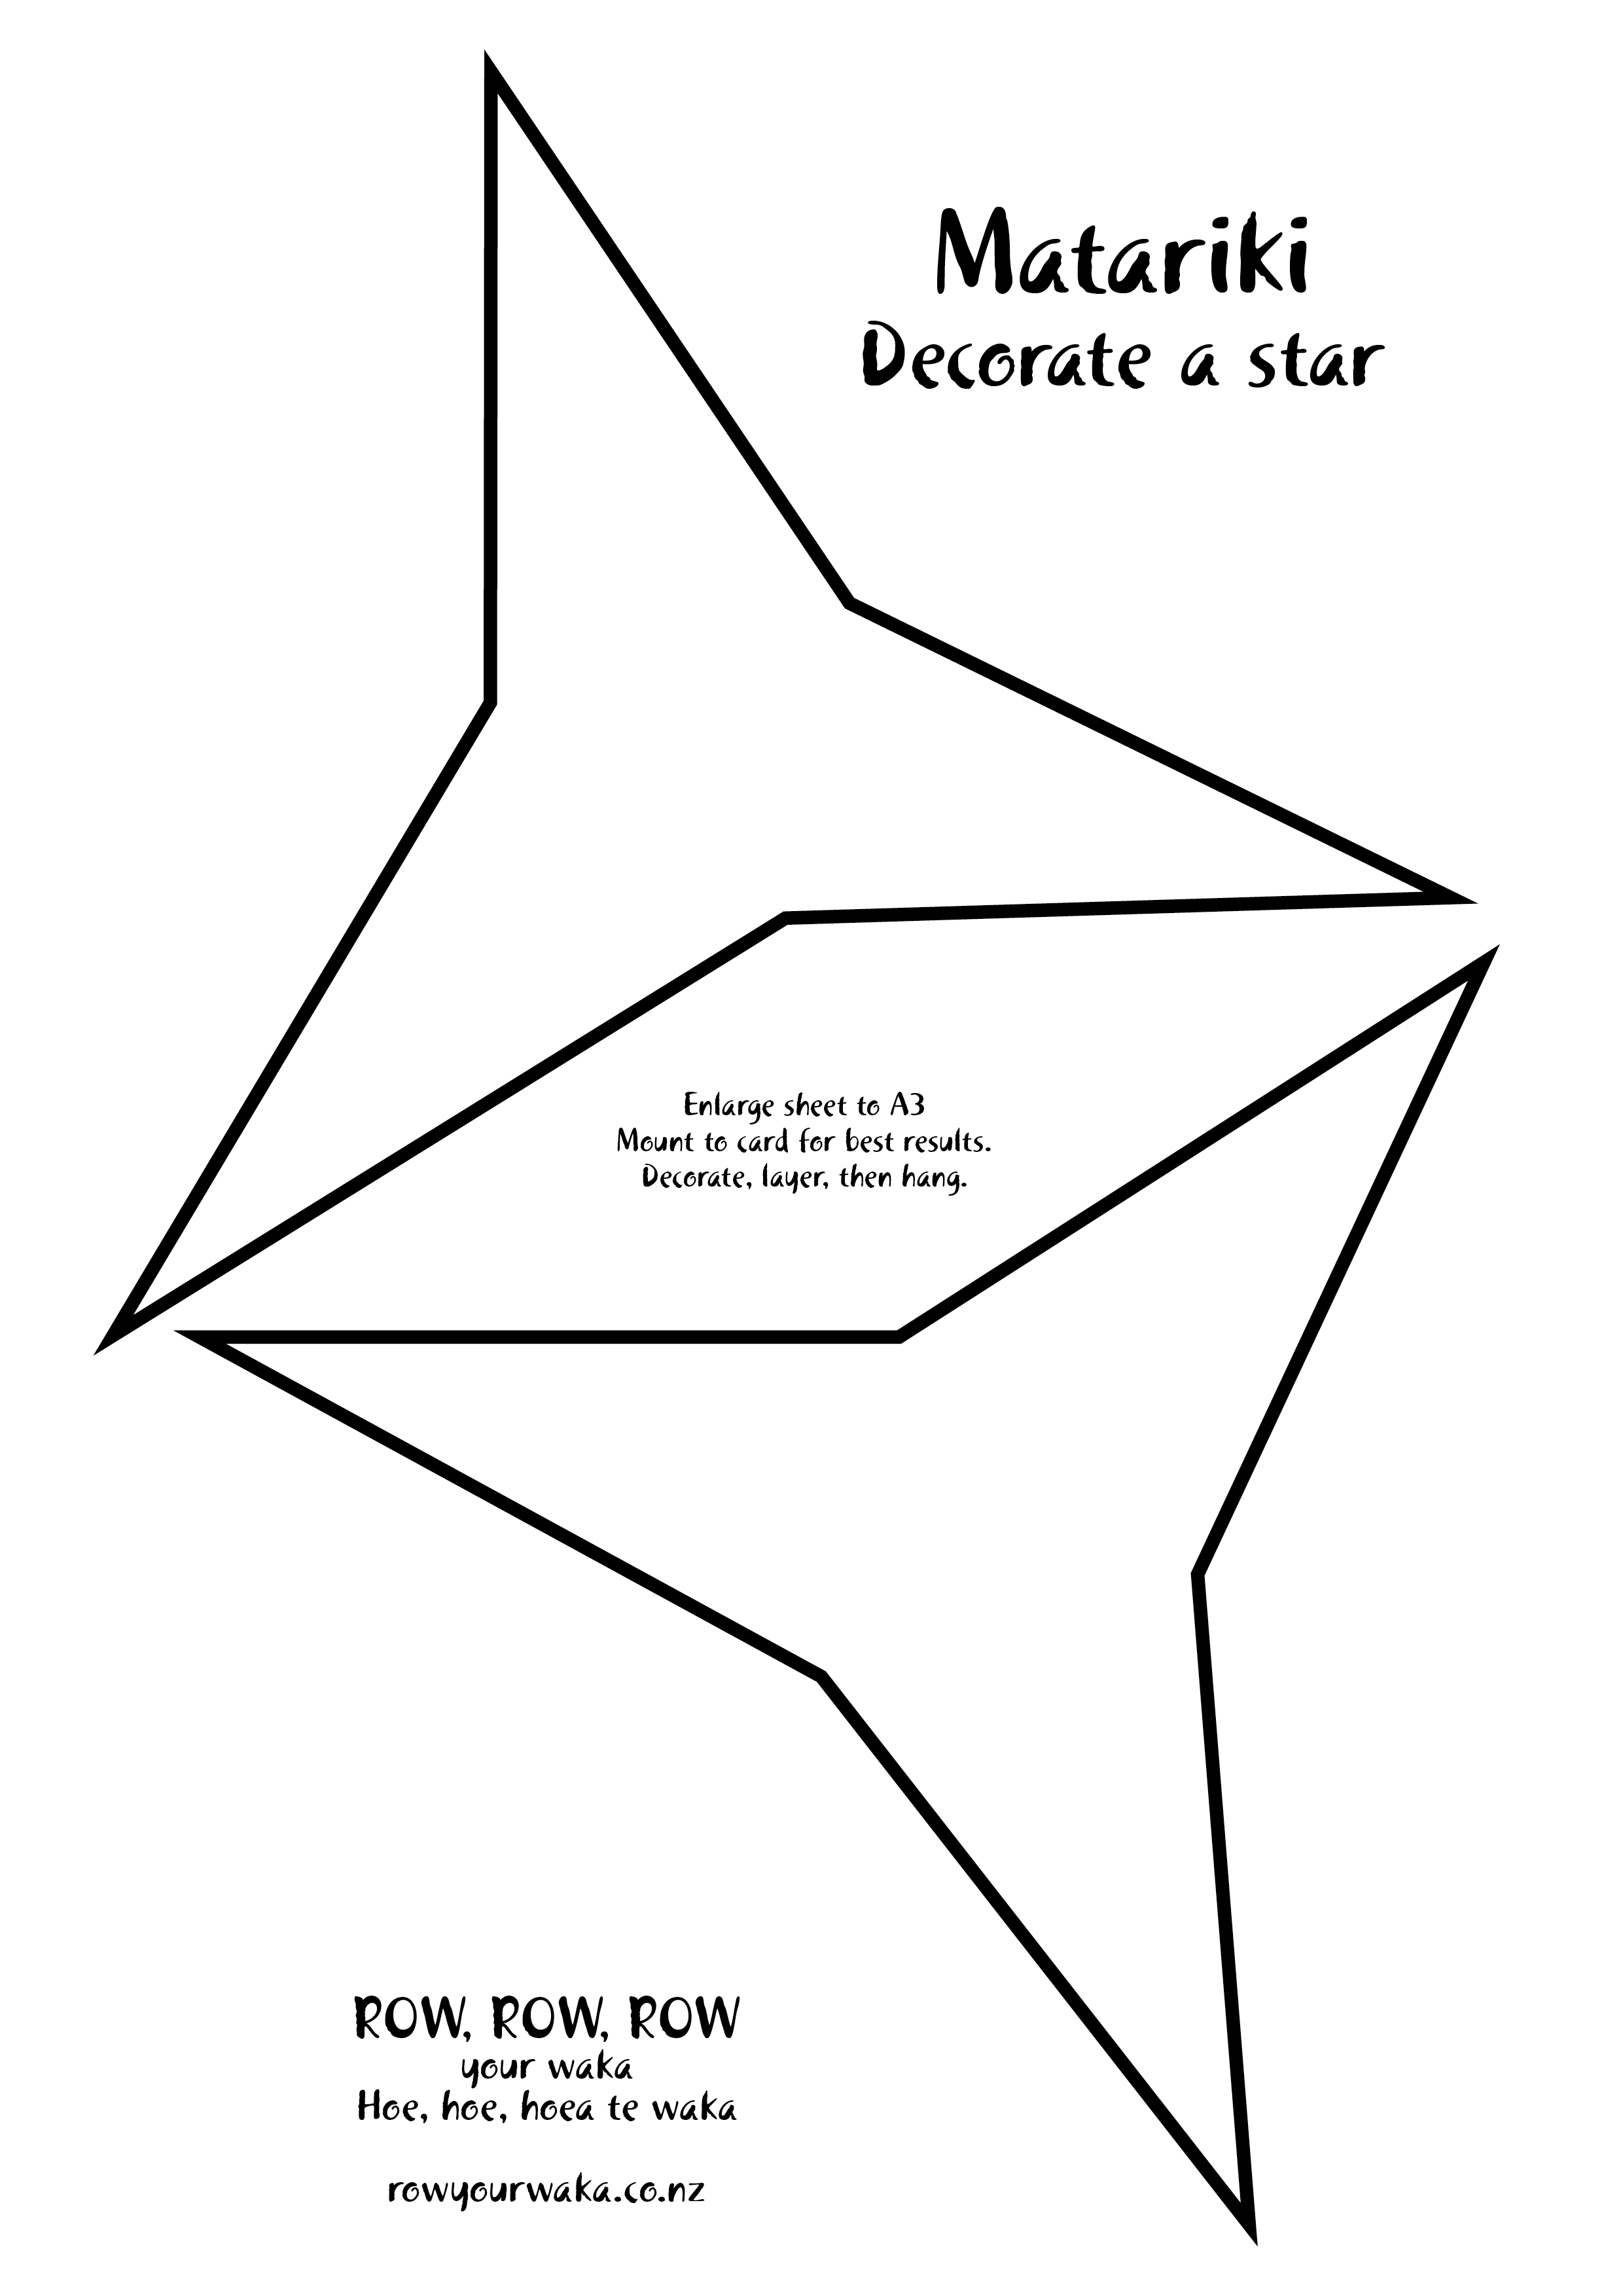 Matariki decorate a star